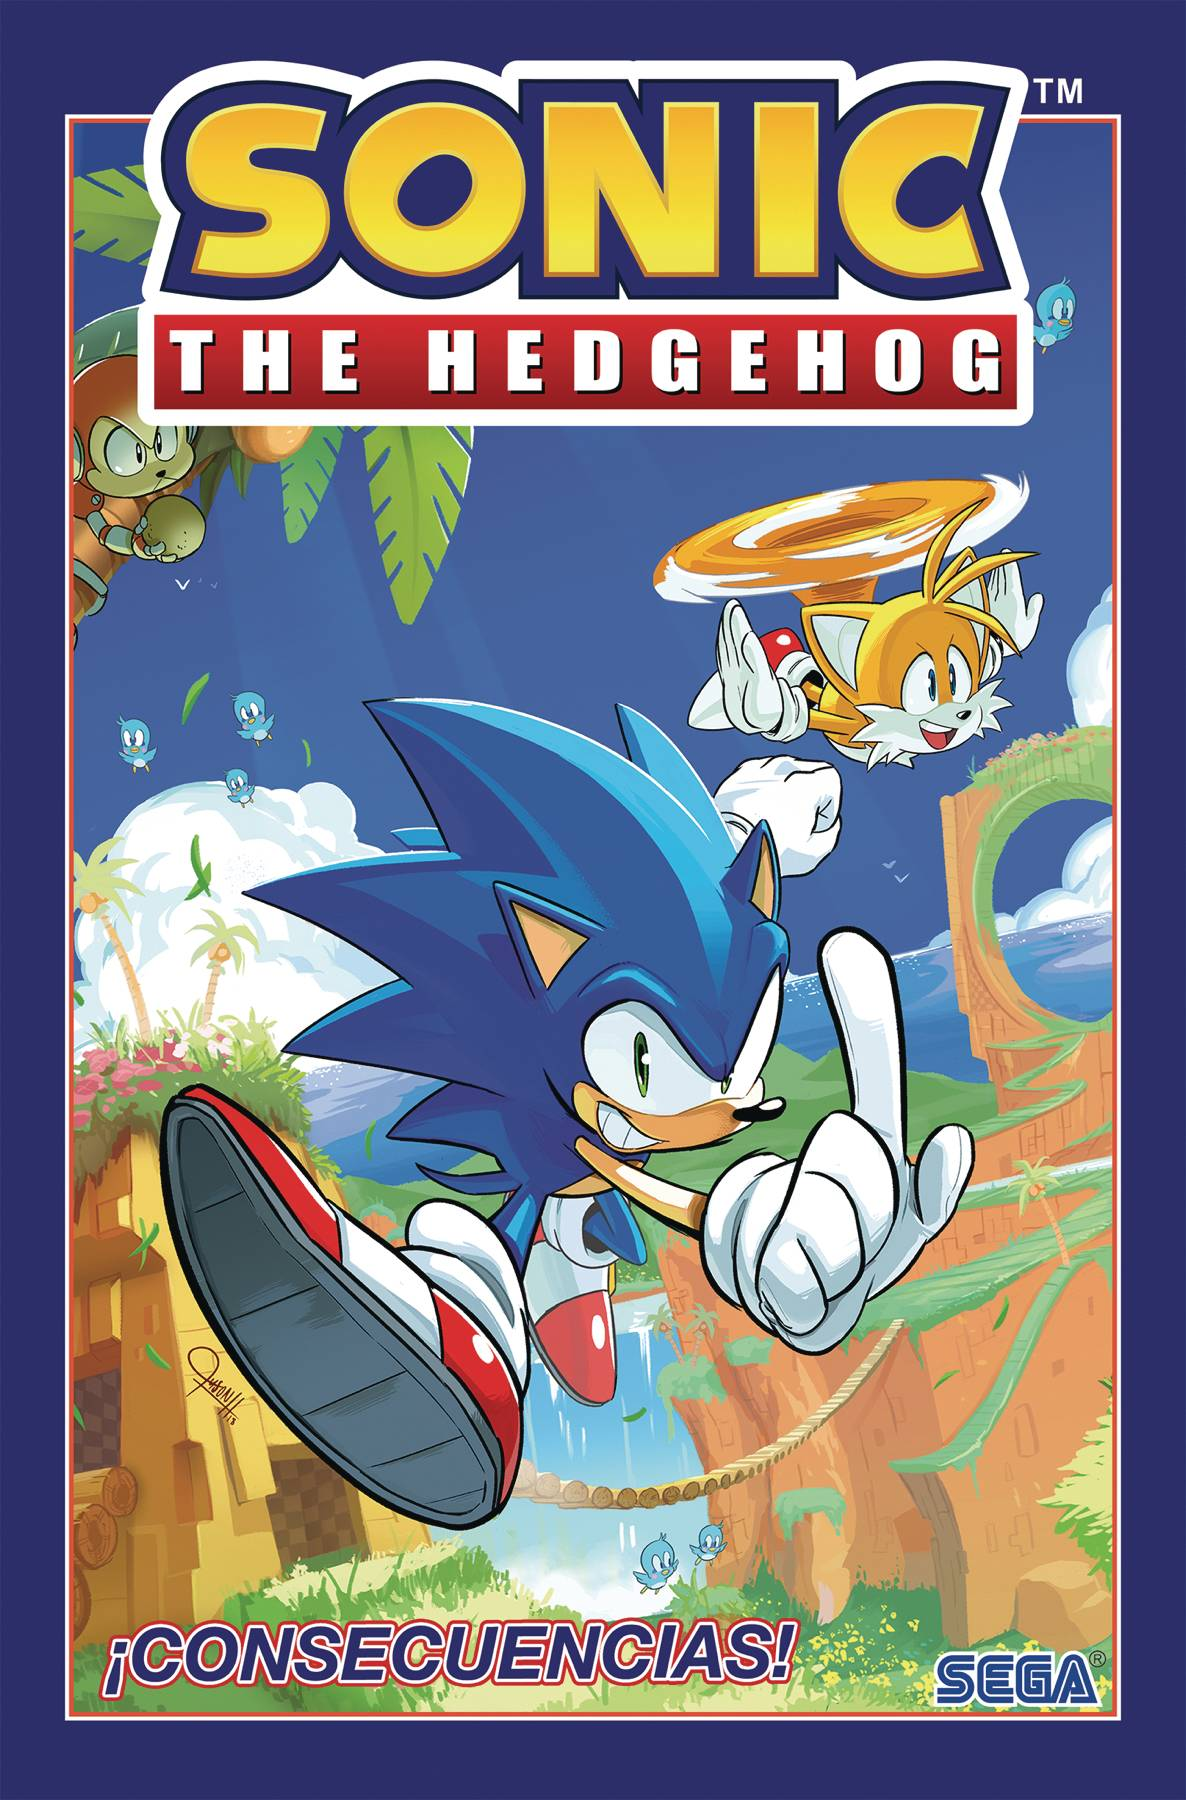 SONIC THE HEDGEHOG SPANISH ED TP 01 CONSECUENCIAS